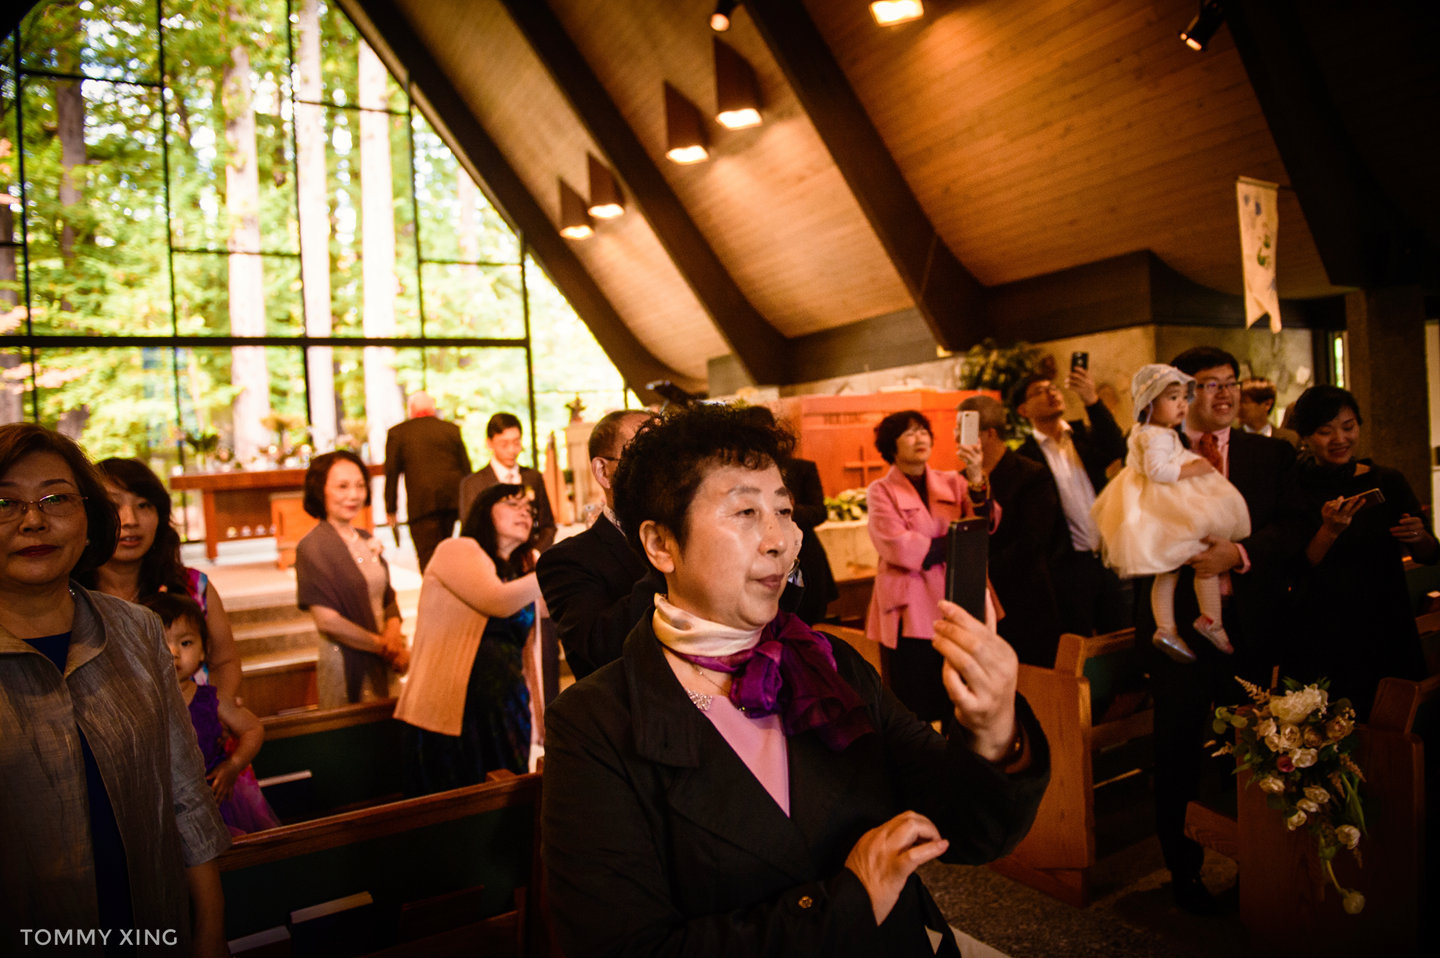 San Francisco Wedding Photography Valley Presbyterian Church WEDDING Tommy Xing Photography 洛杉矶旧金山婚礼婚纱照摄影师063.jpg